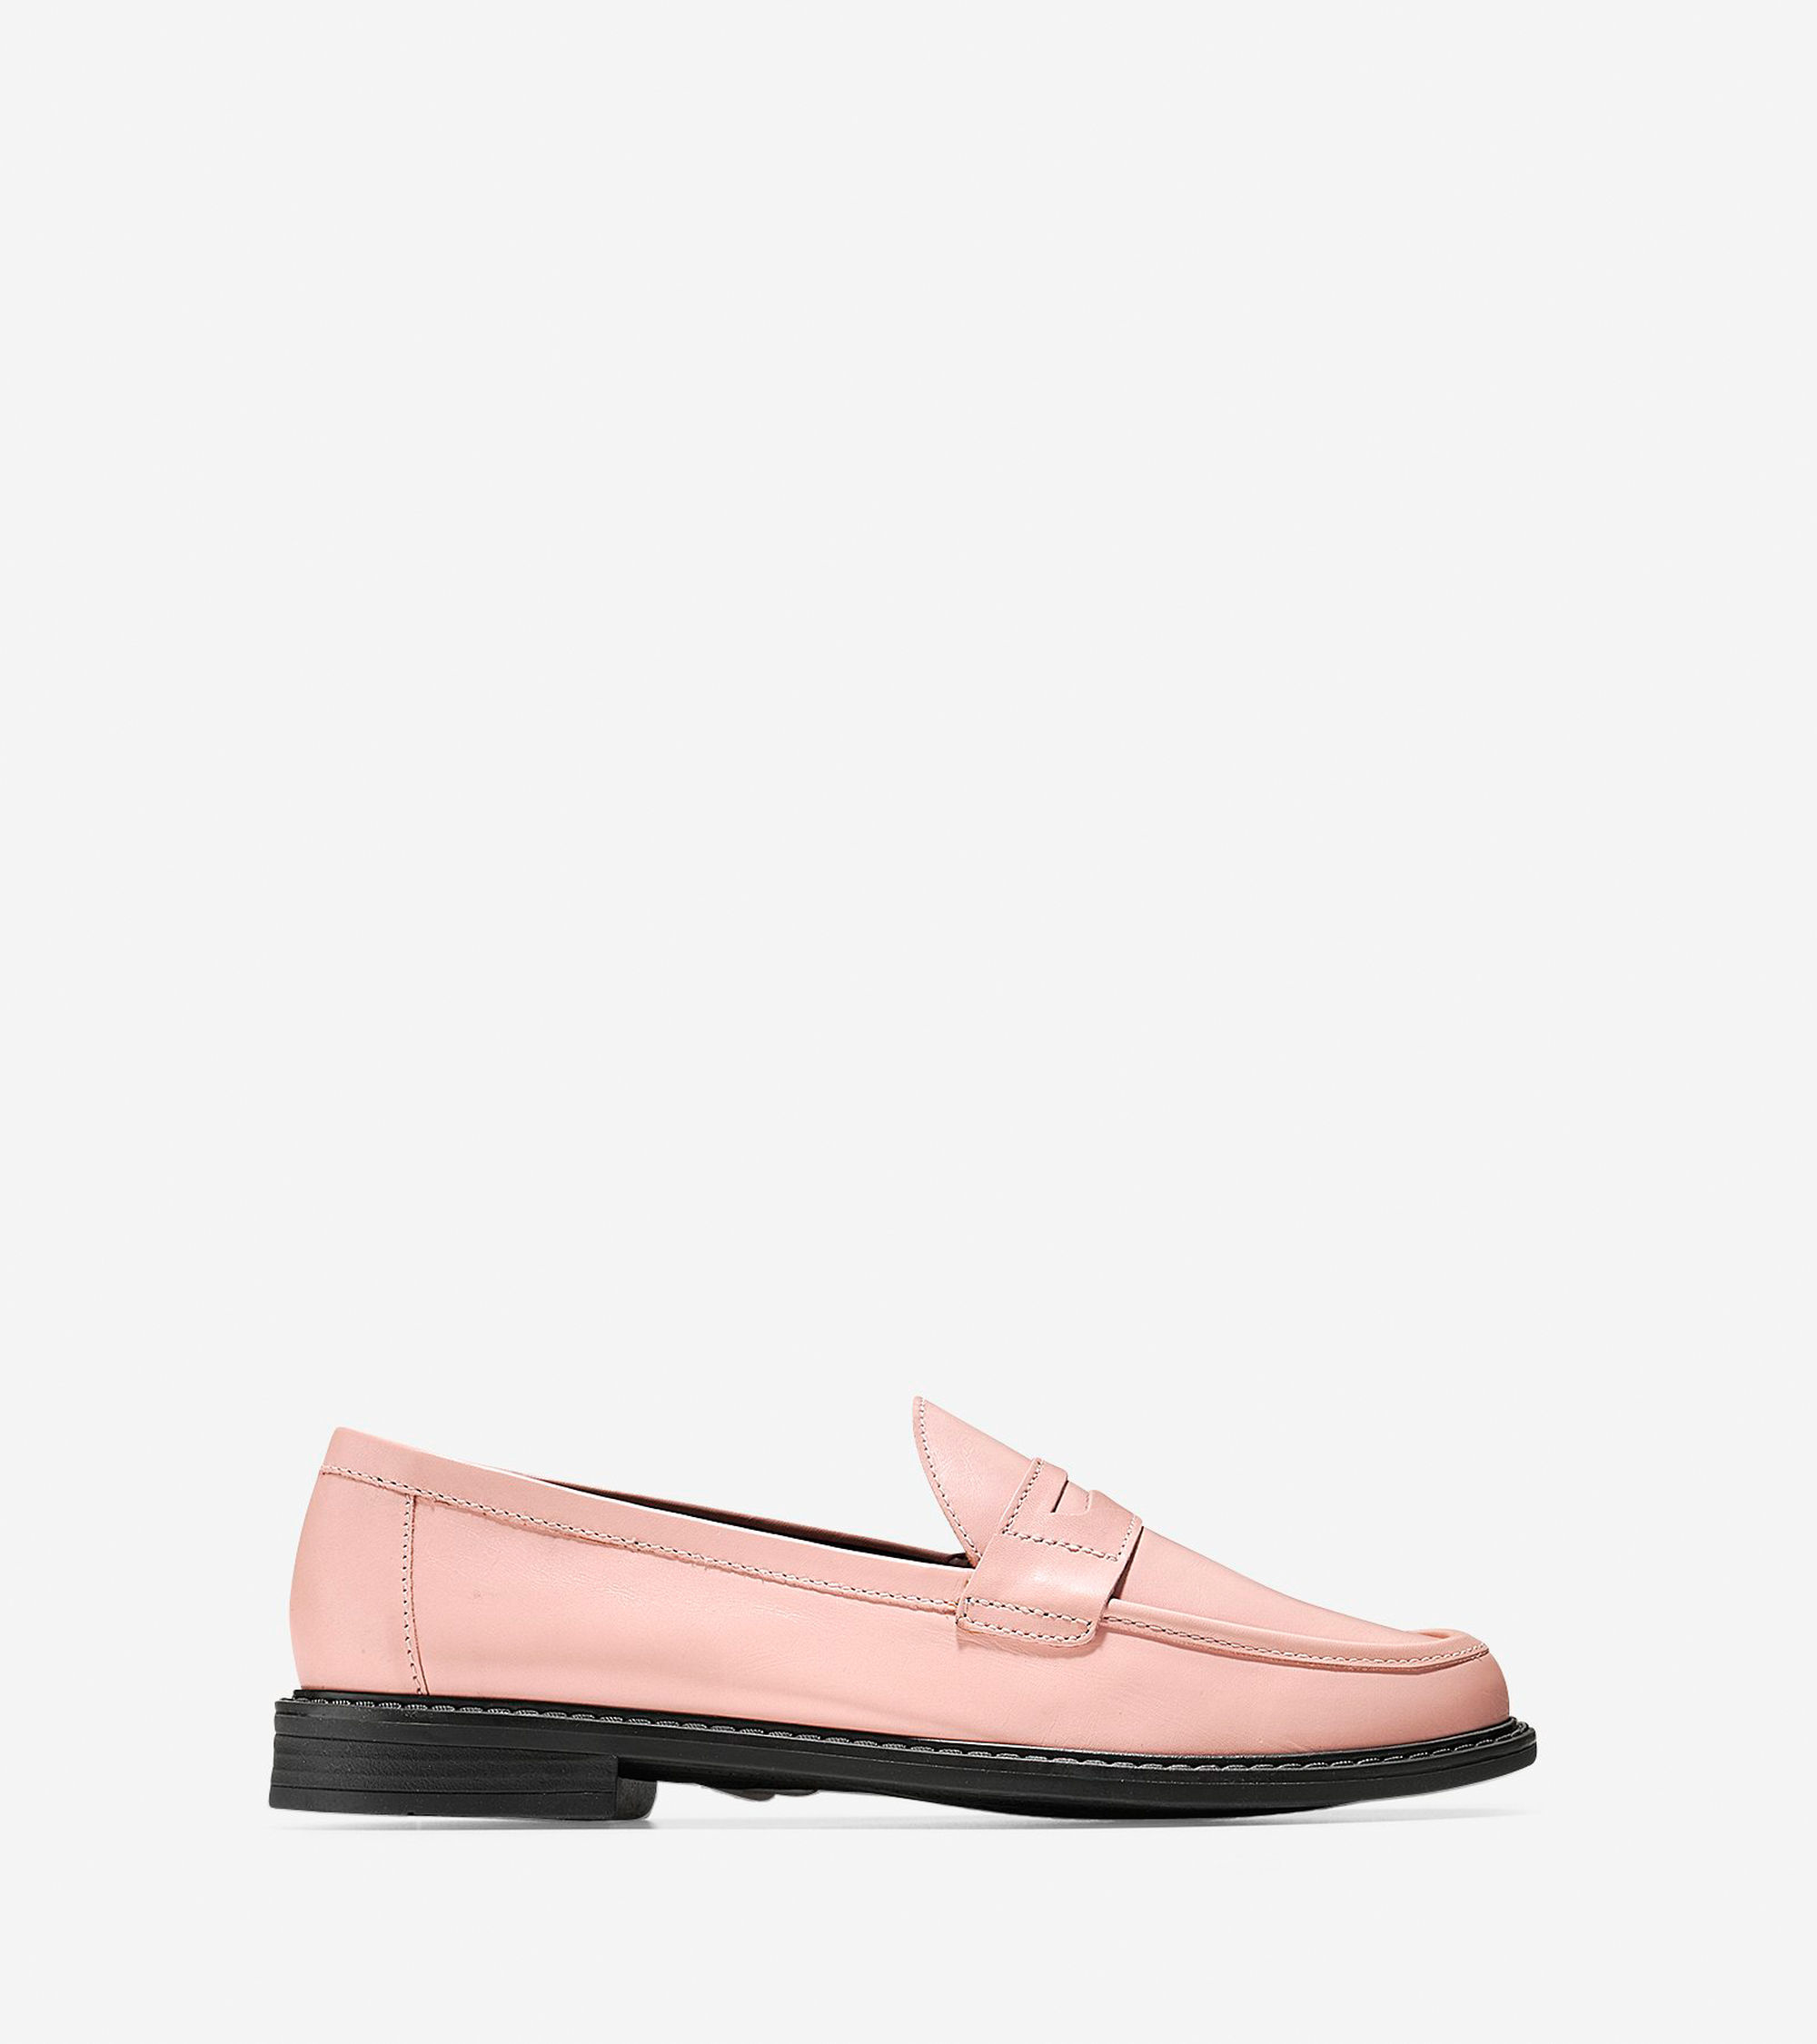 2b3ef3a9a61 Cole Haan Women s Pinch Campus Penny Loafer in Pink - Lyst